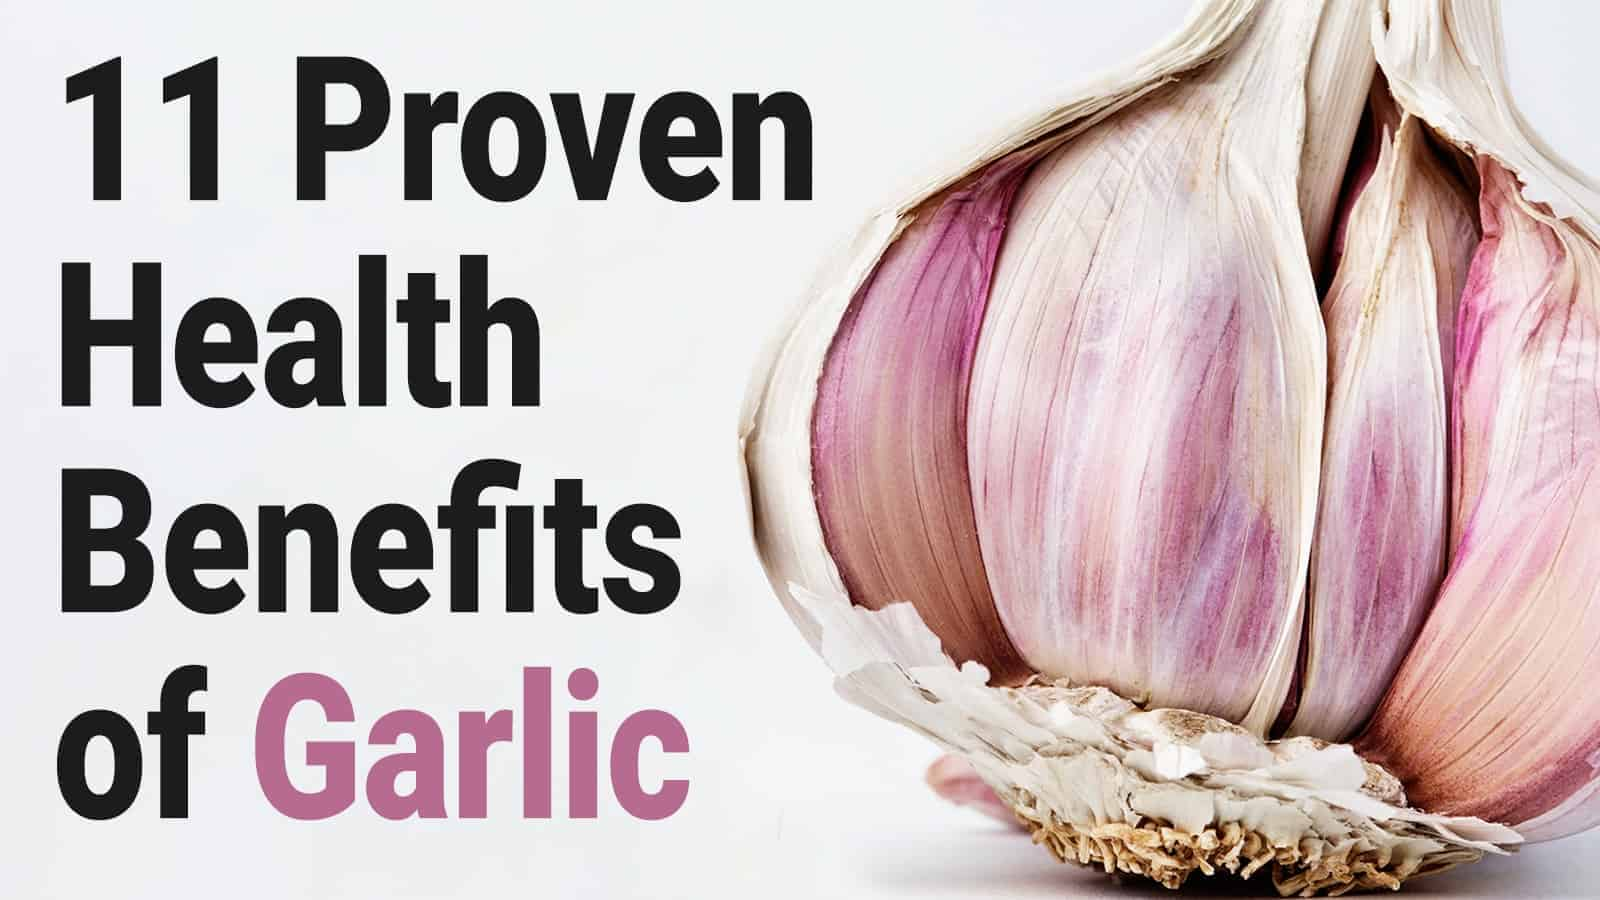 11 proven health benefits of garlic